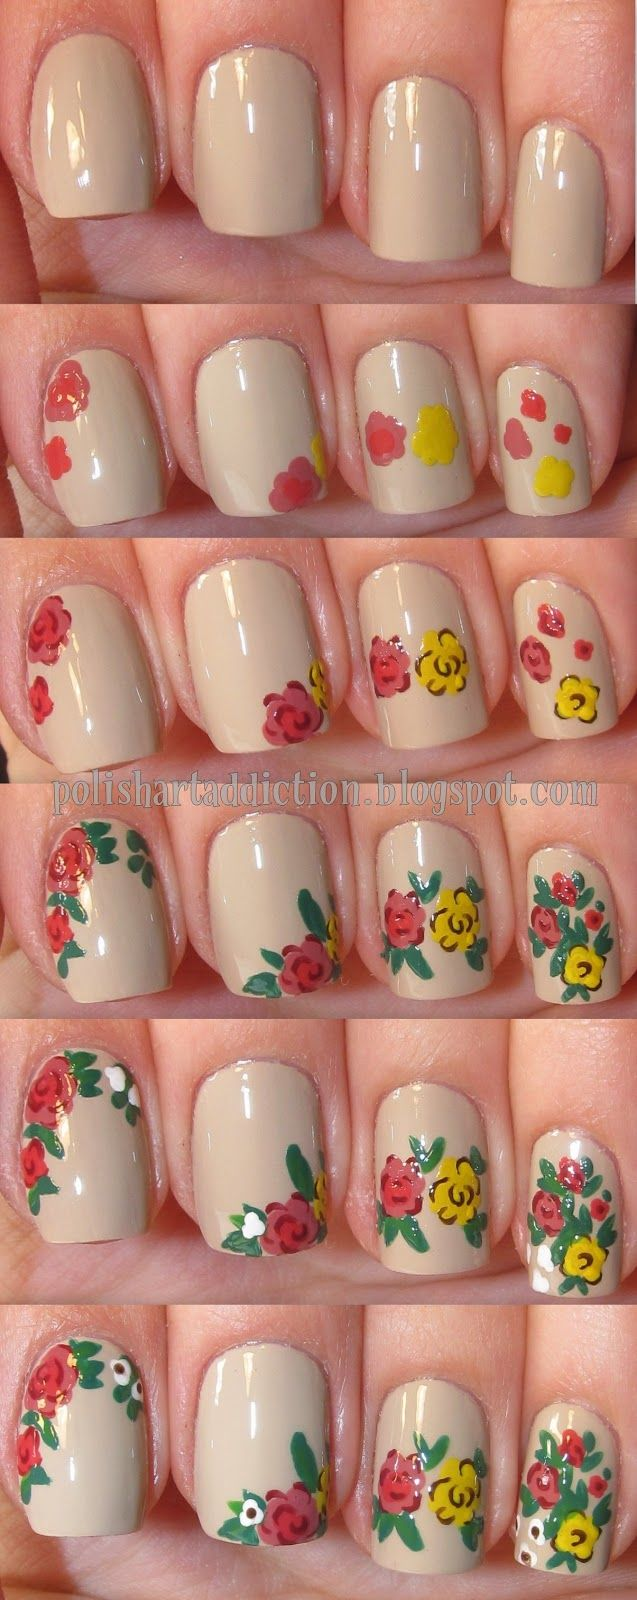 Pinned by www.SimpleNailArtTips.com TUTORIALS: NAIL ART DESIGN IDEAS -Polish Art Addiction: Vintage Floral